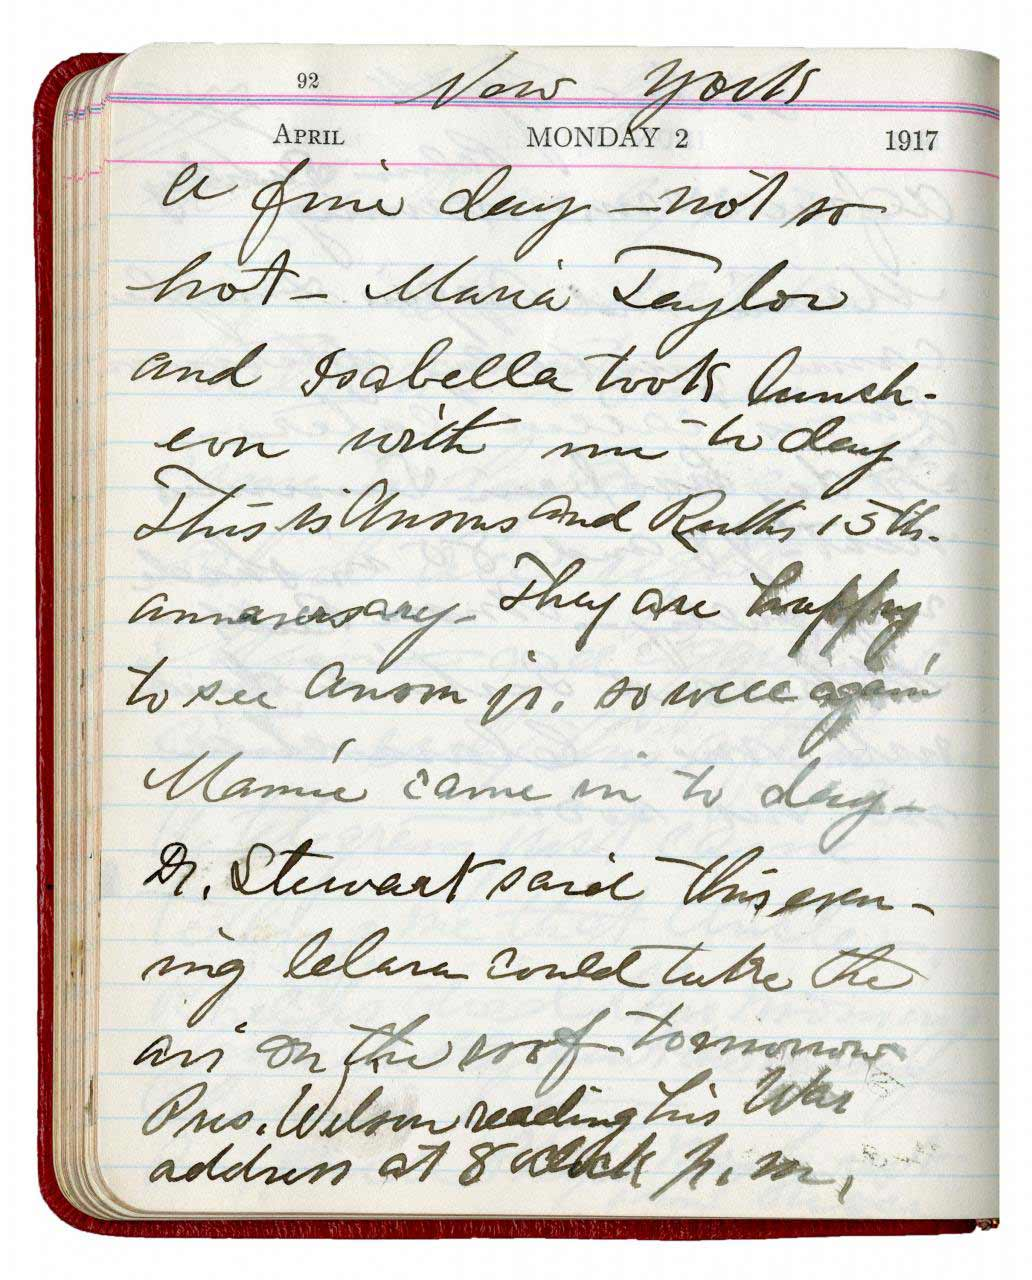 Diary entry by Mary T. Hill - April 2, 1917